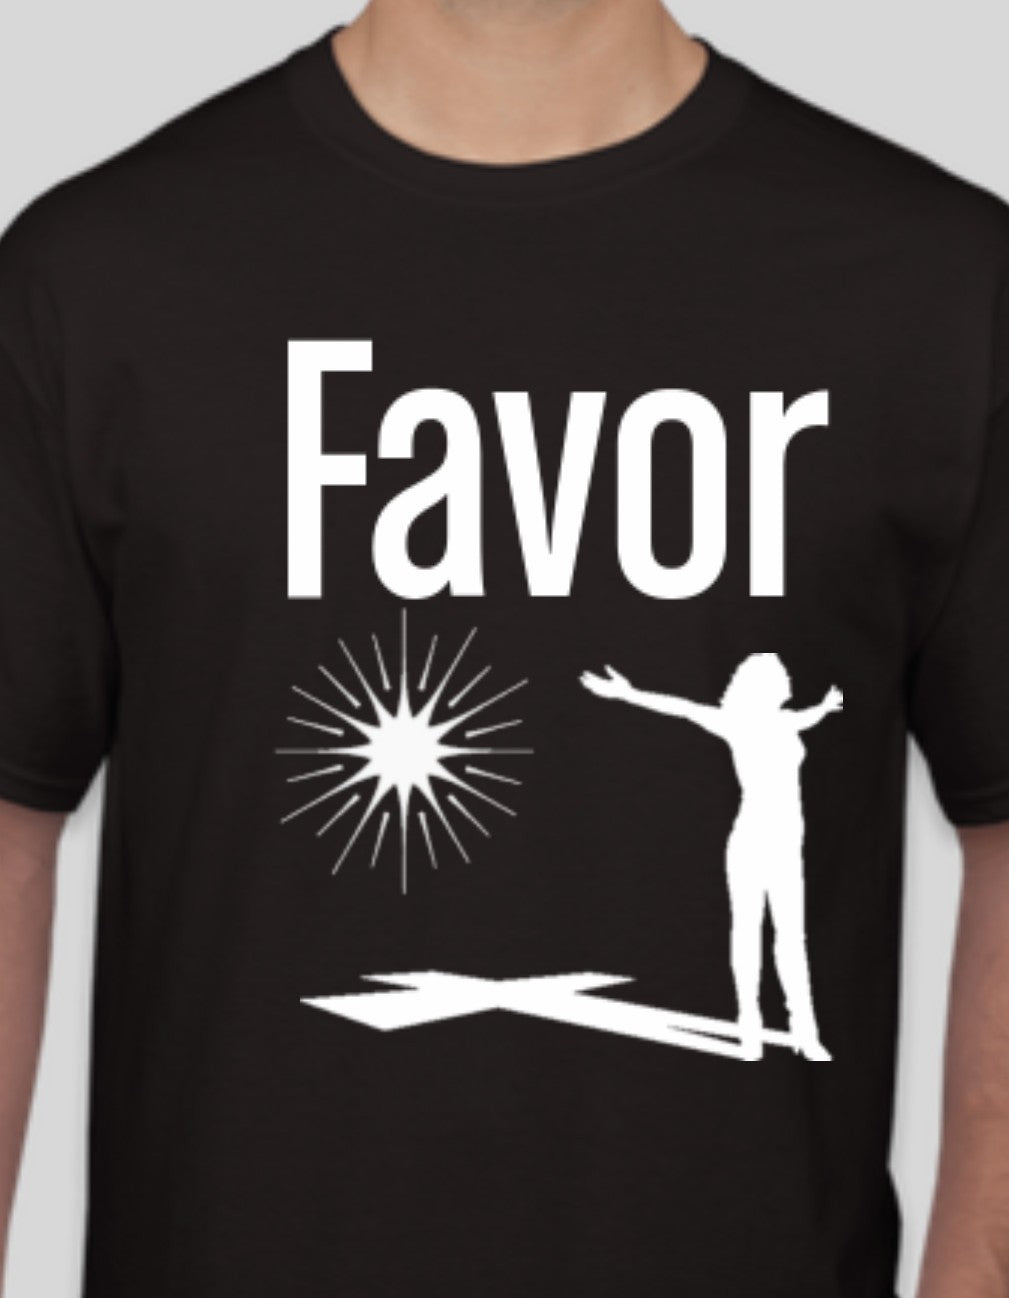 Women's Favor Black T-shirt